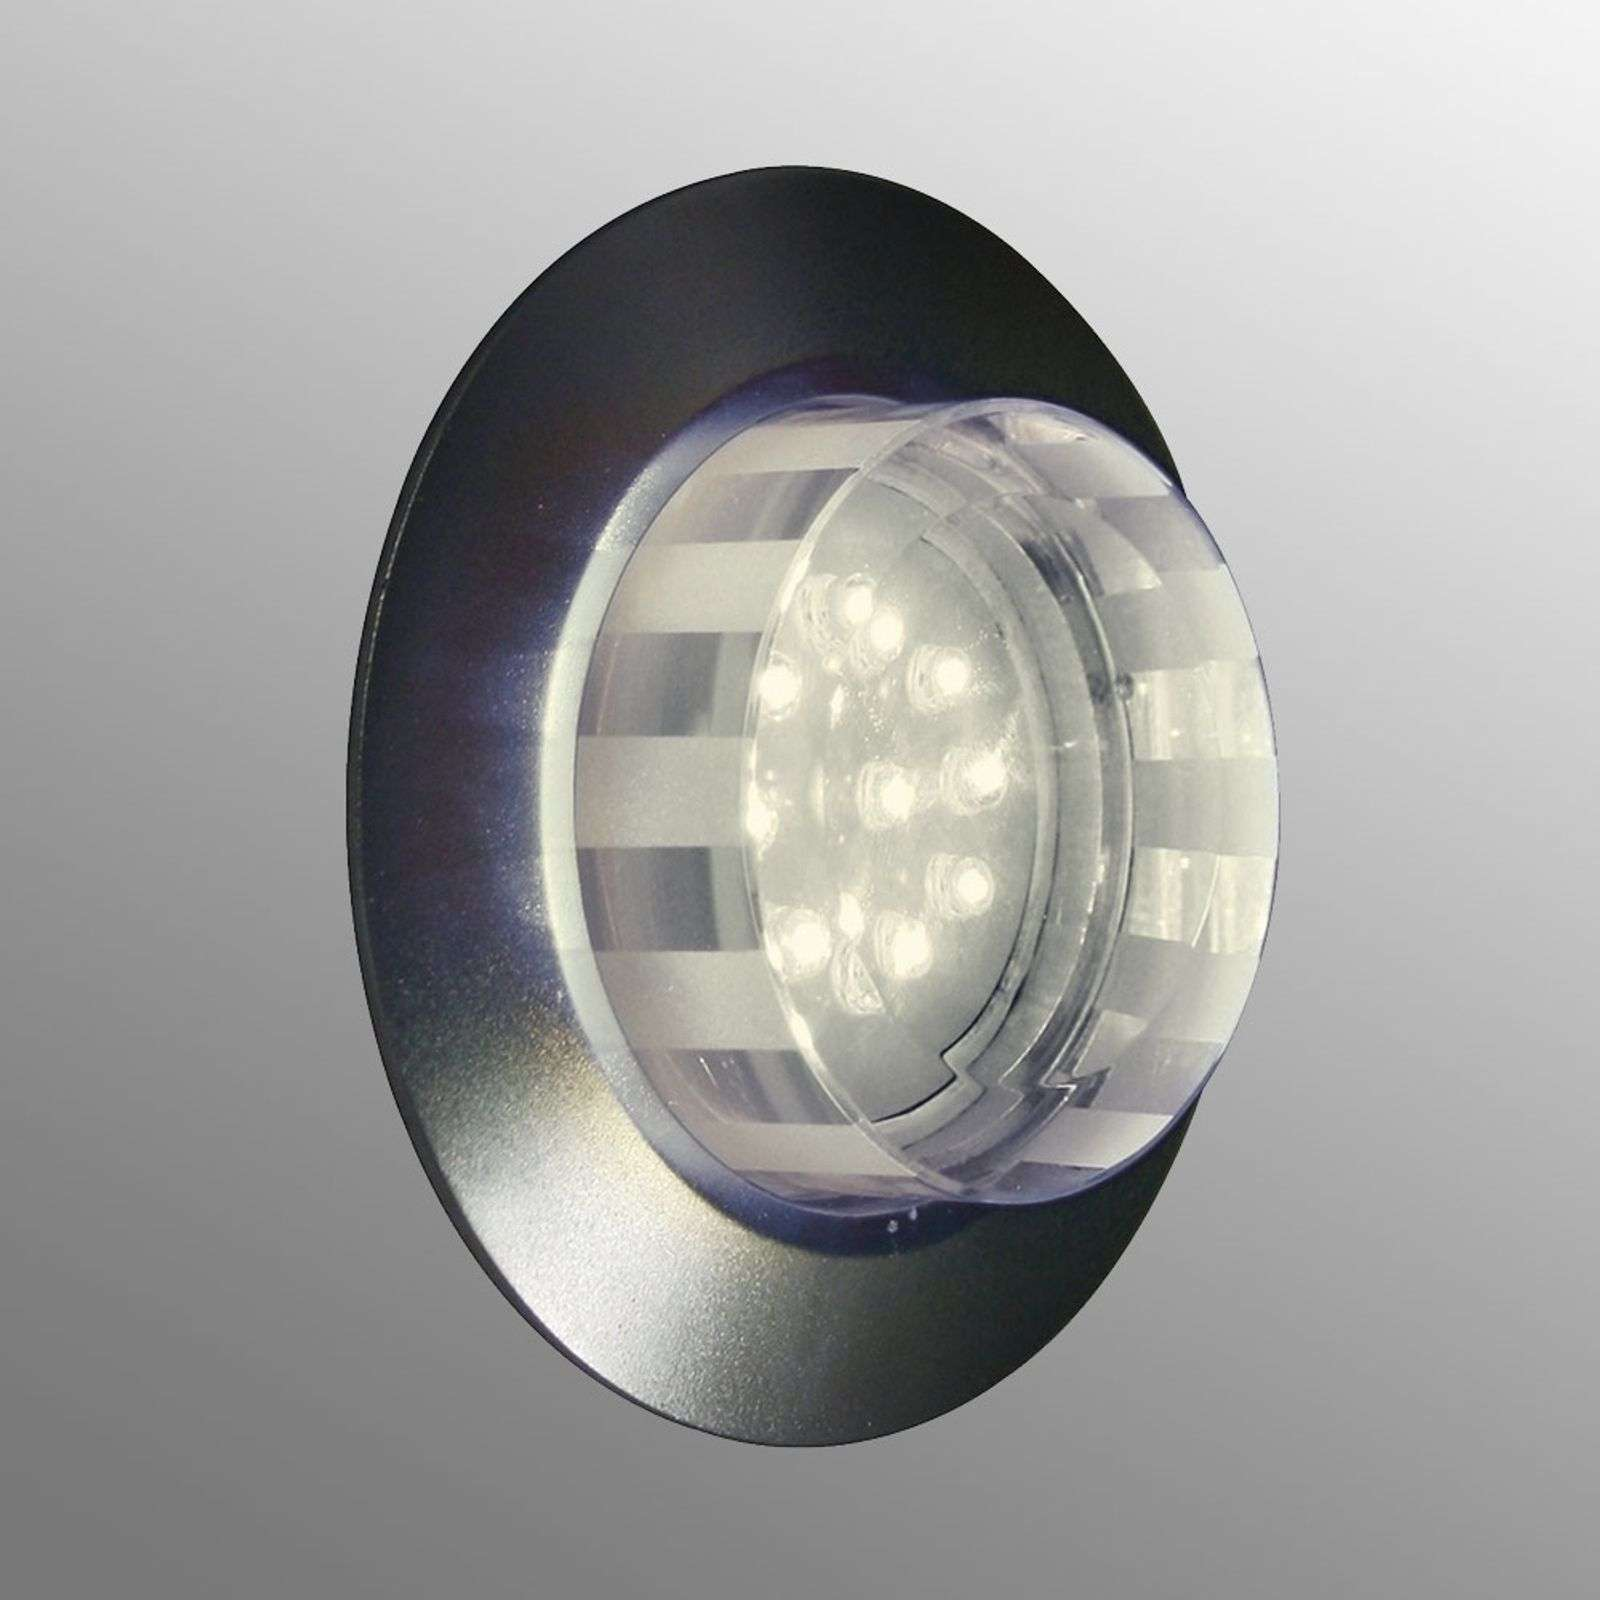 Tito LED wall recessed light, warm white